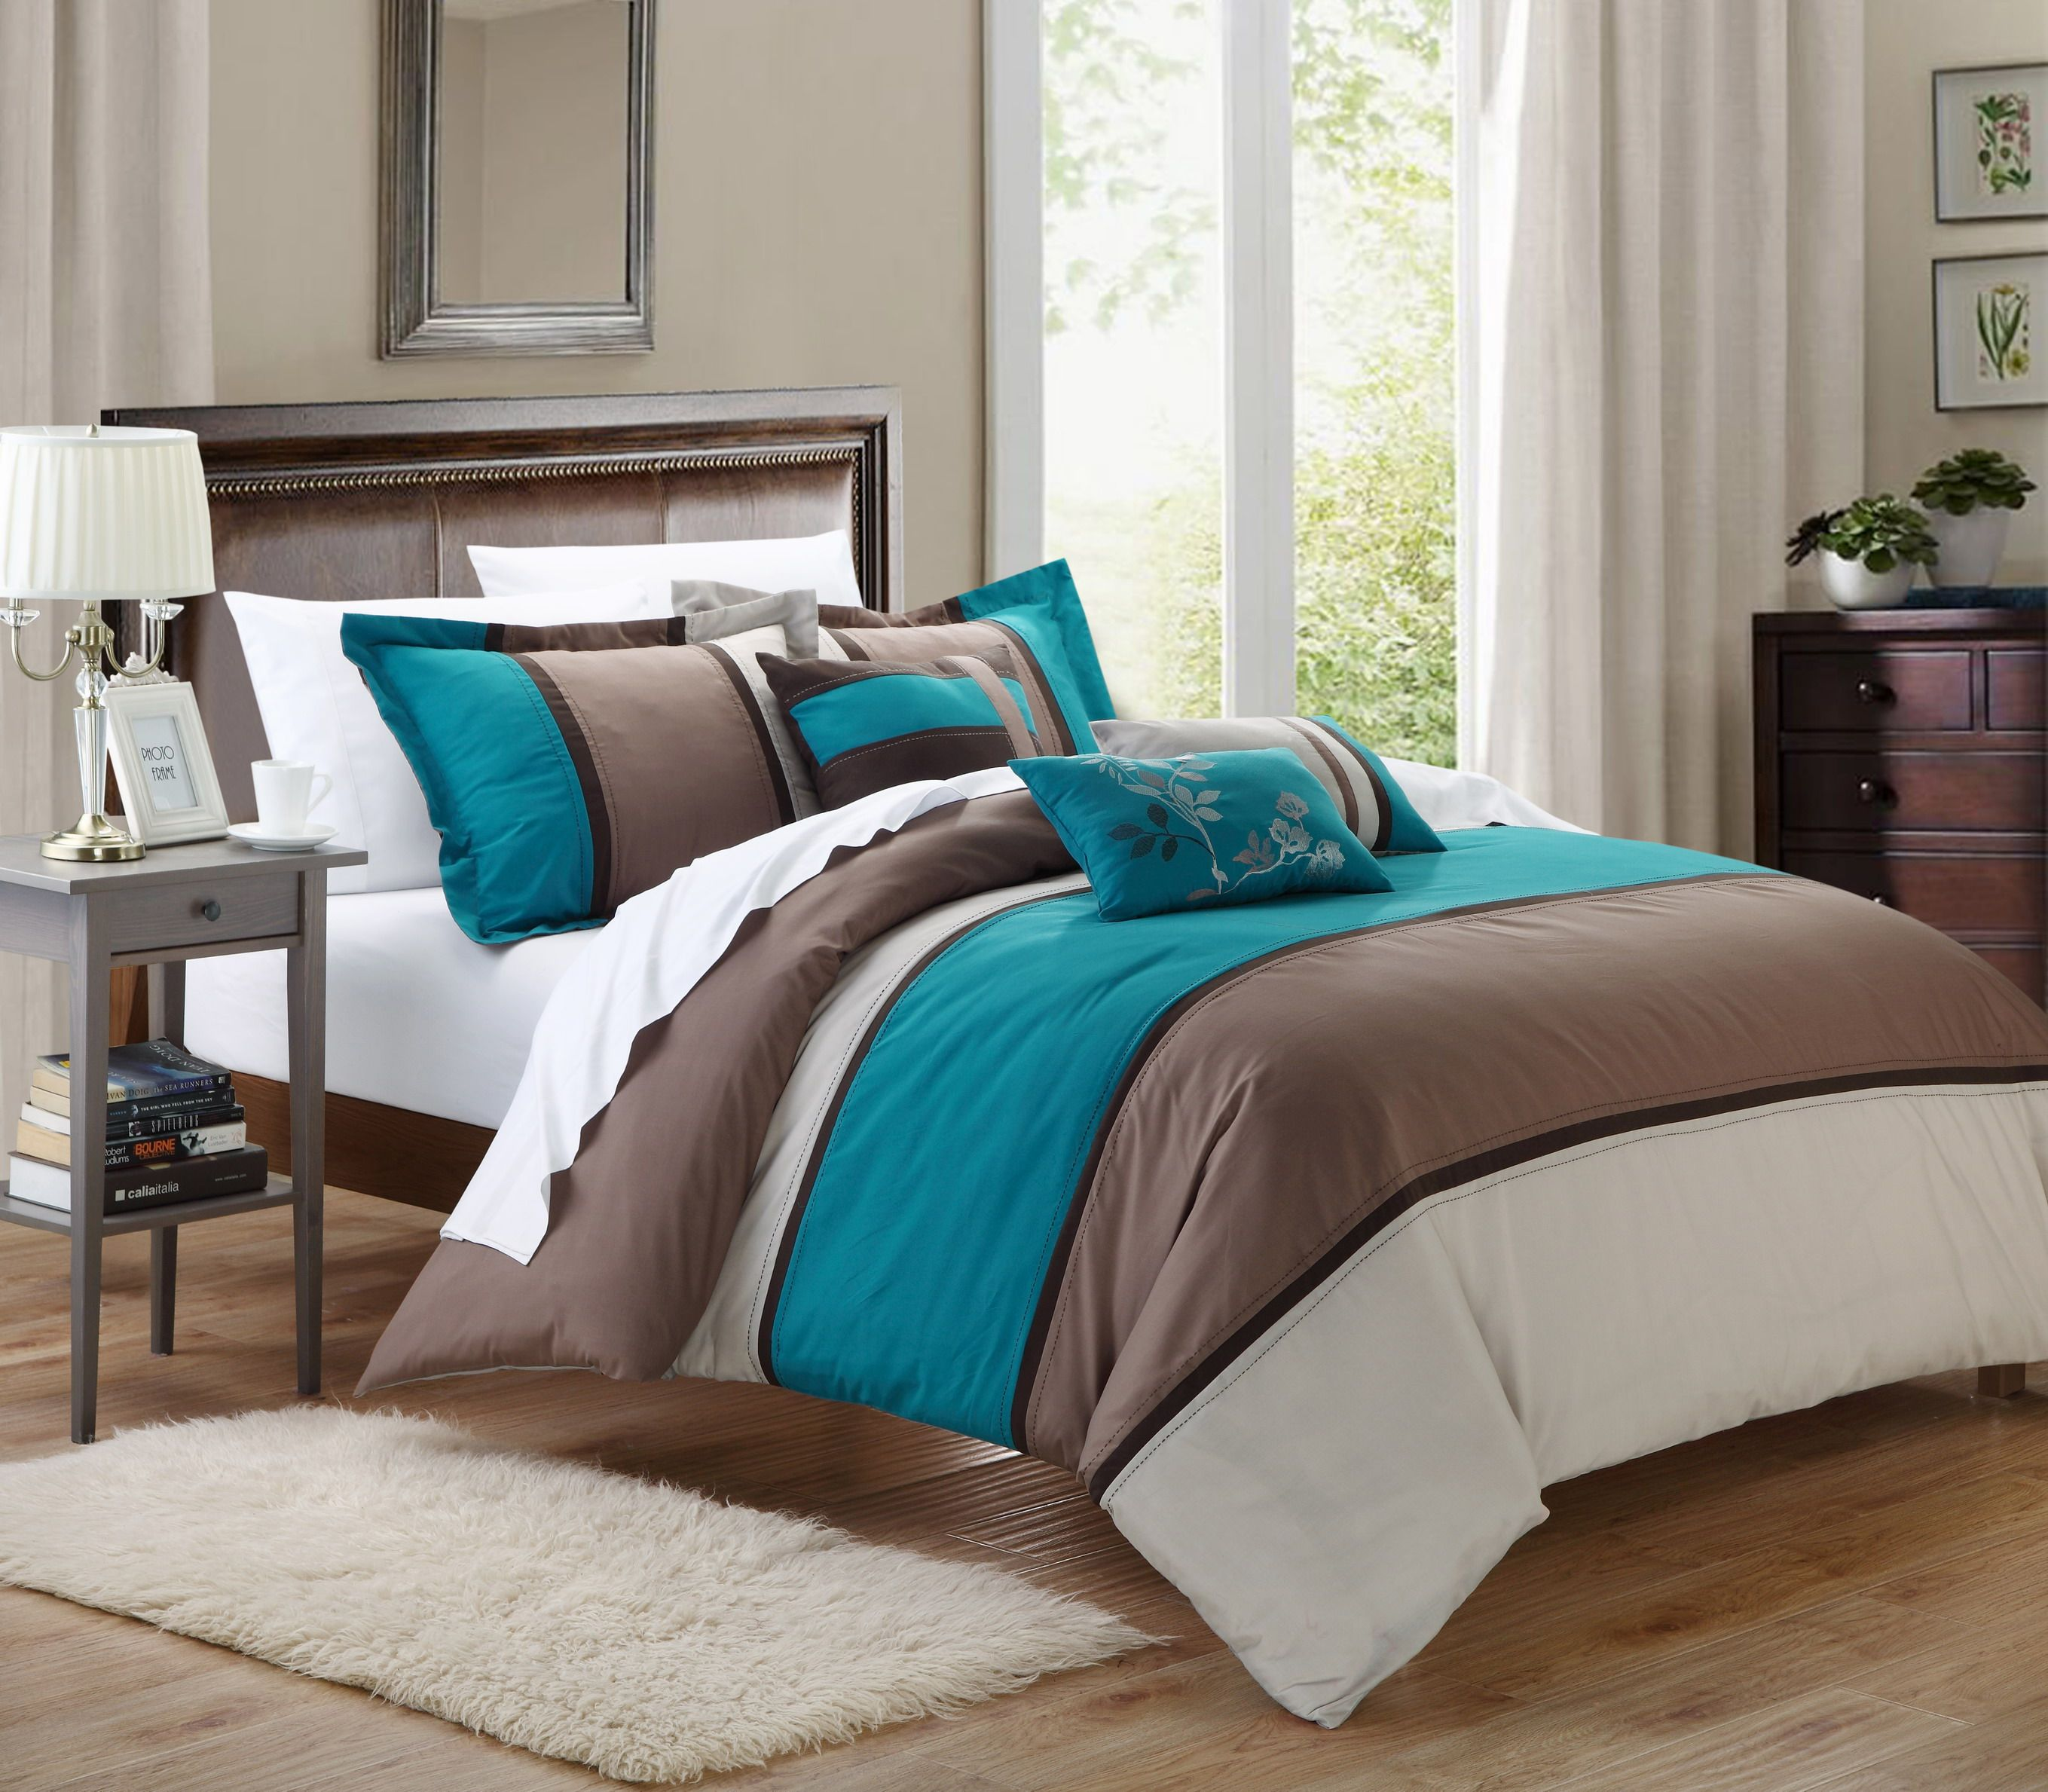 Beautiful Color Block teal and brown patterned forter set that